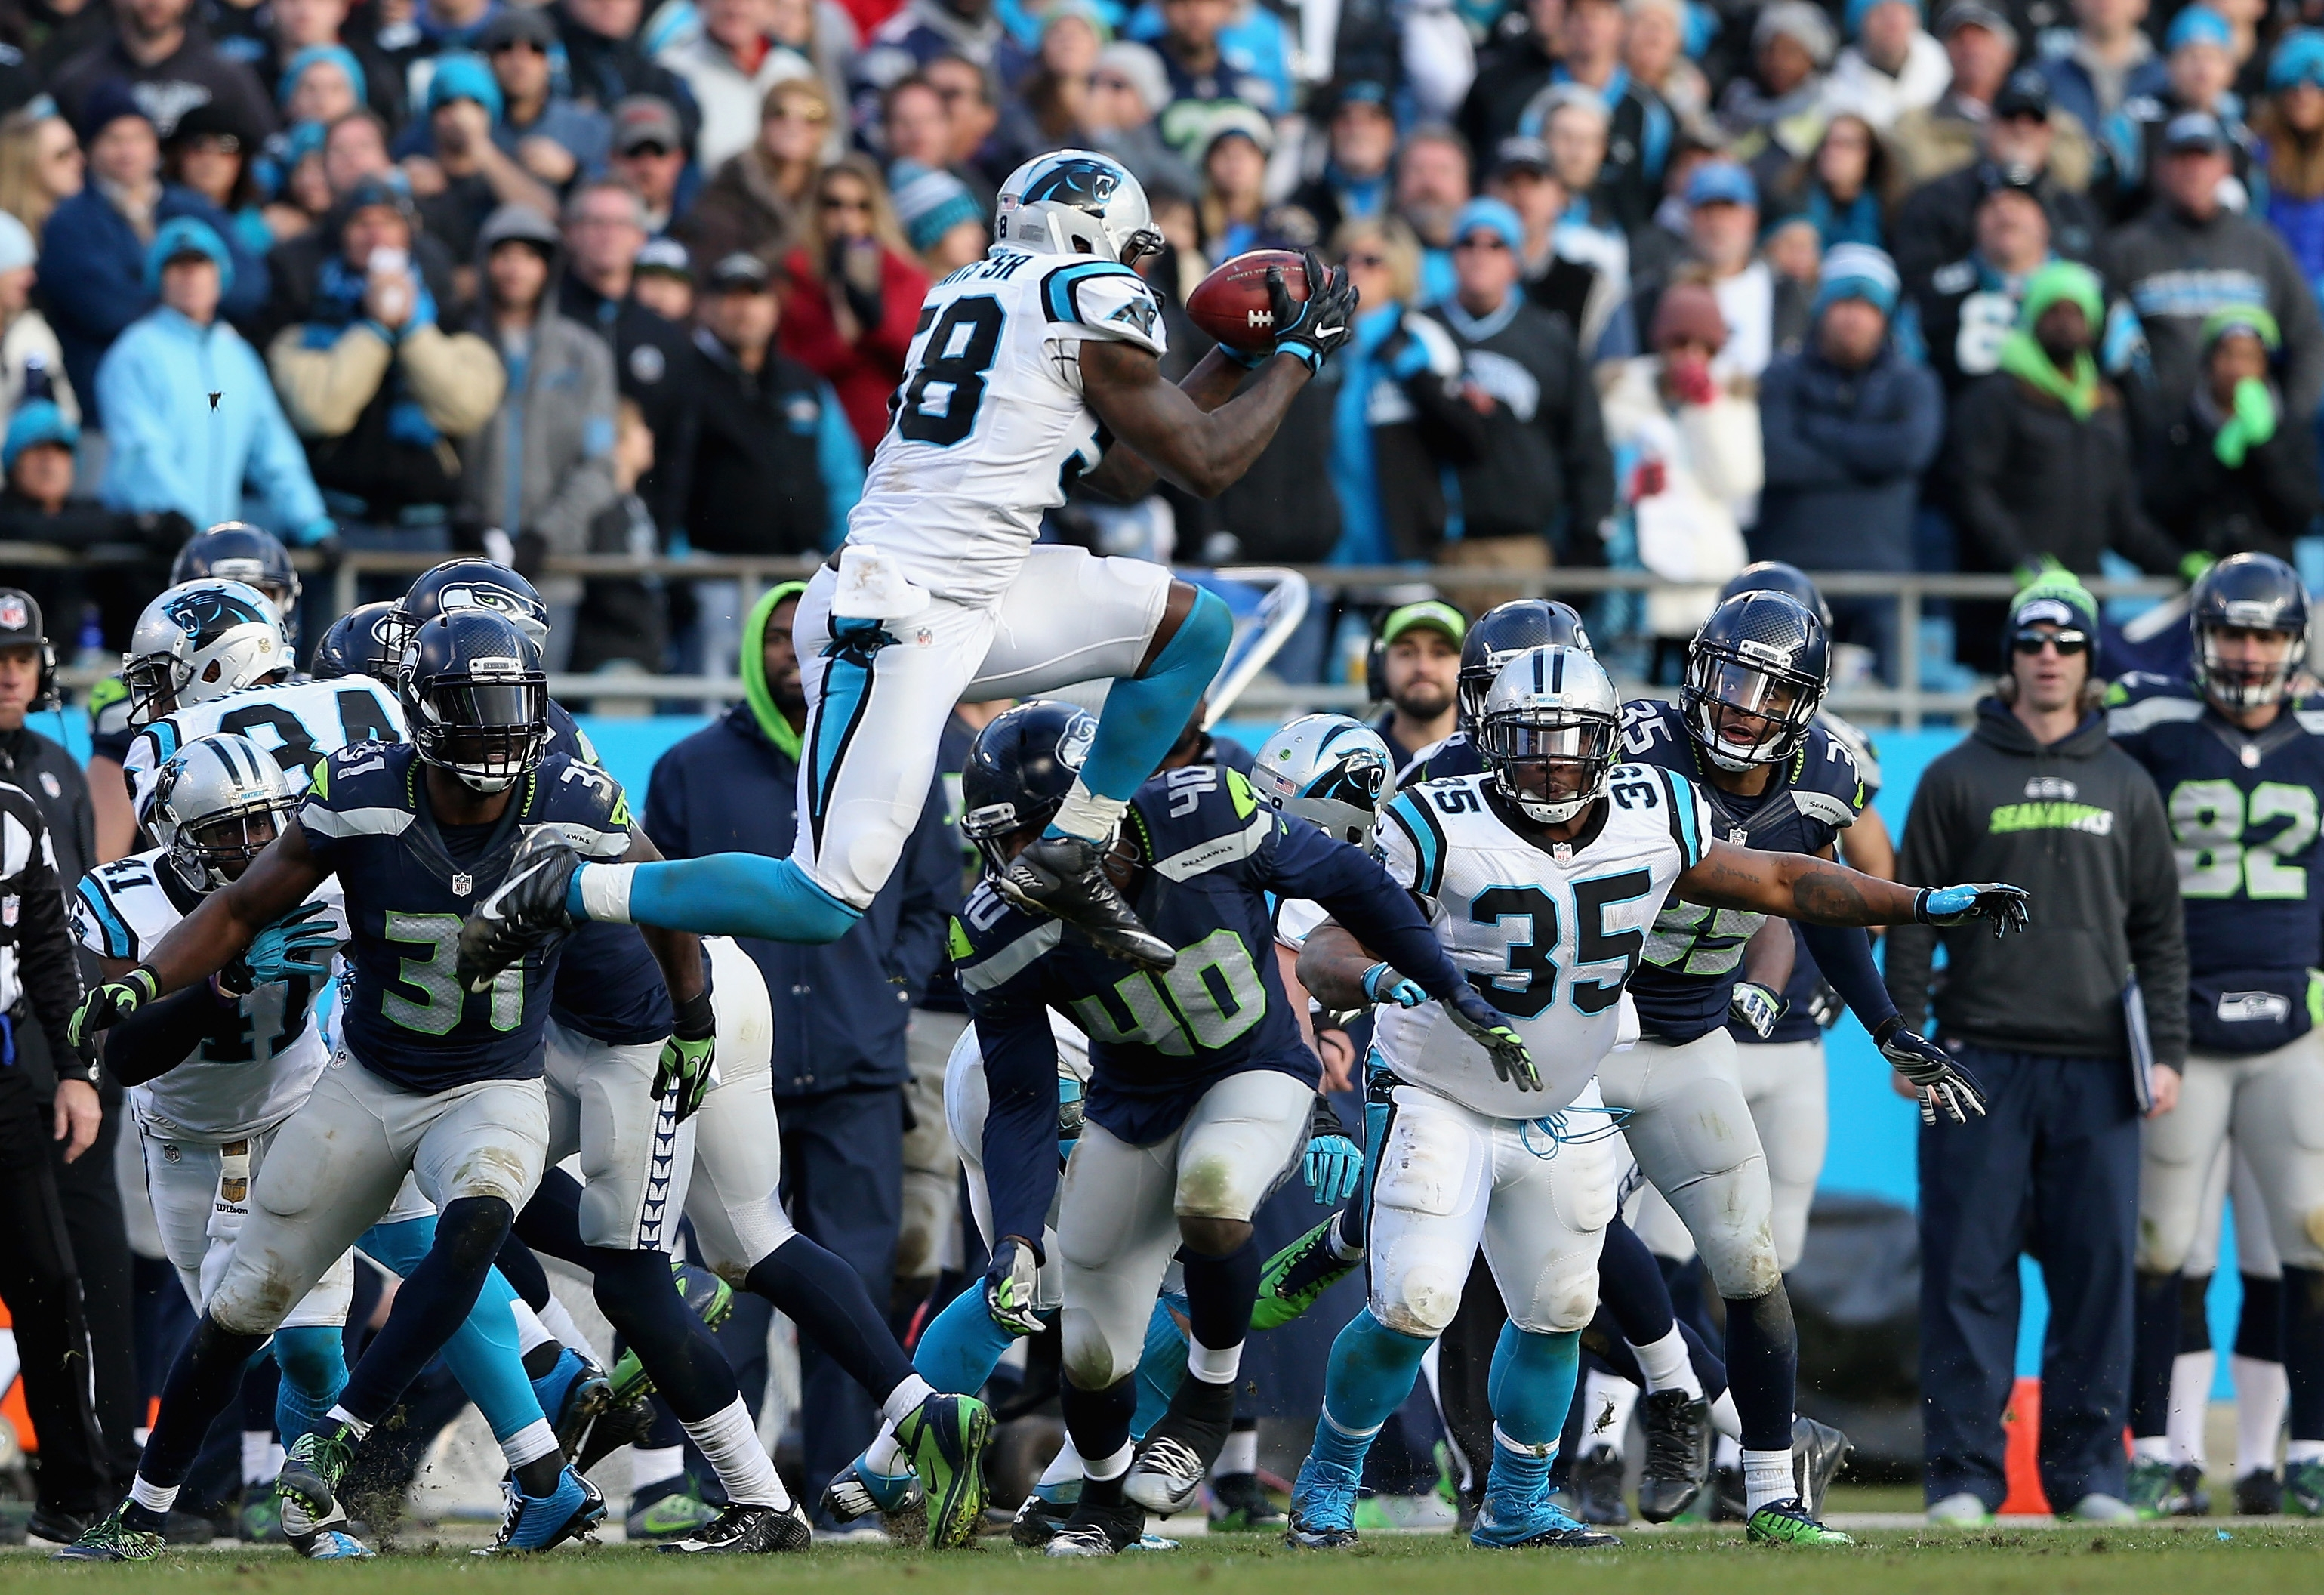 Thomas Davis, Carolina's inspirational leader, soars to corral an onside kick during the fourth quarter of the Panthers' NFC Divisional Playoff game against Seattle.